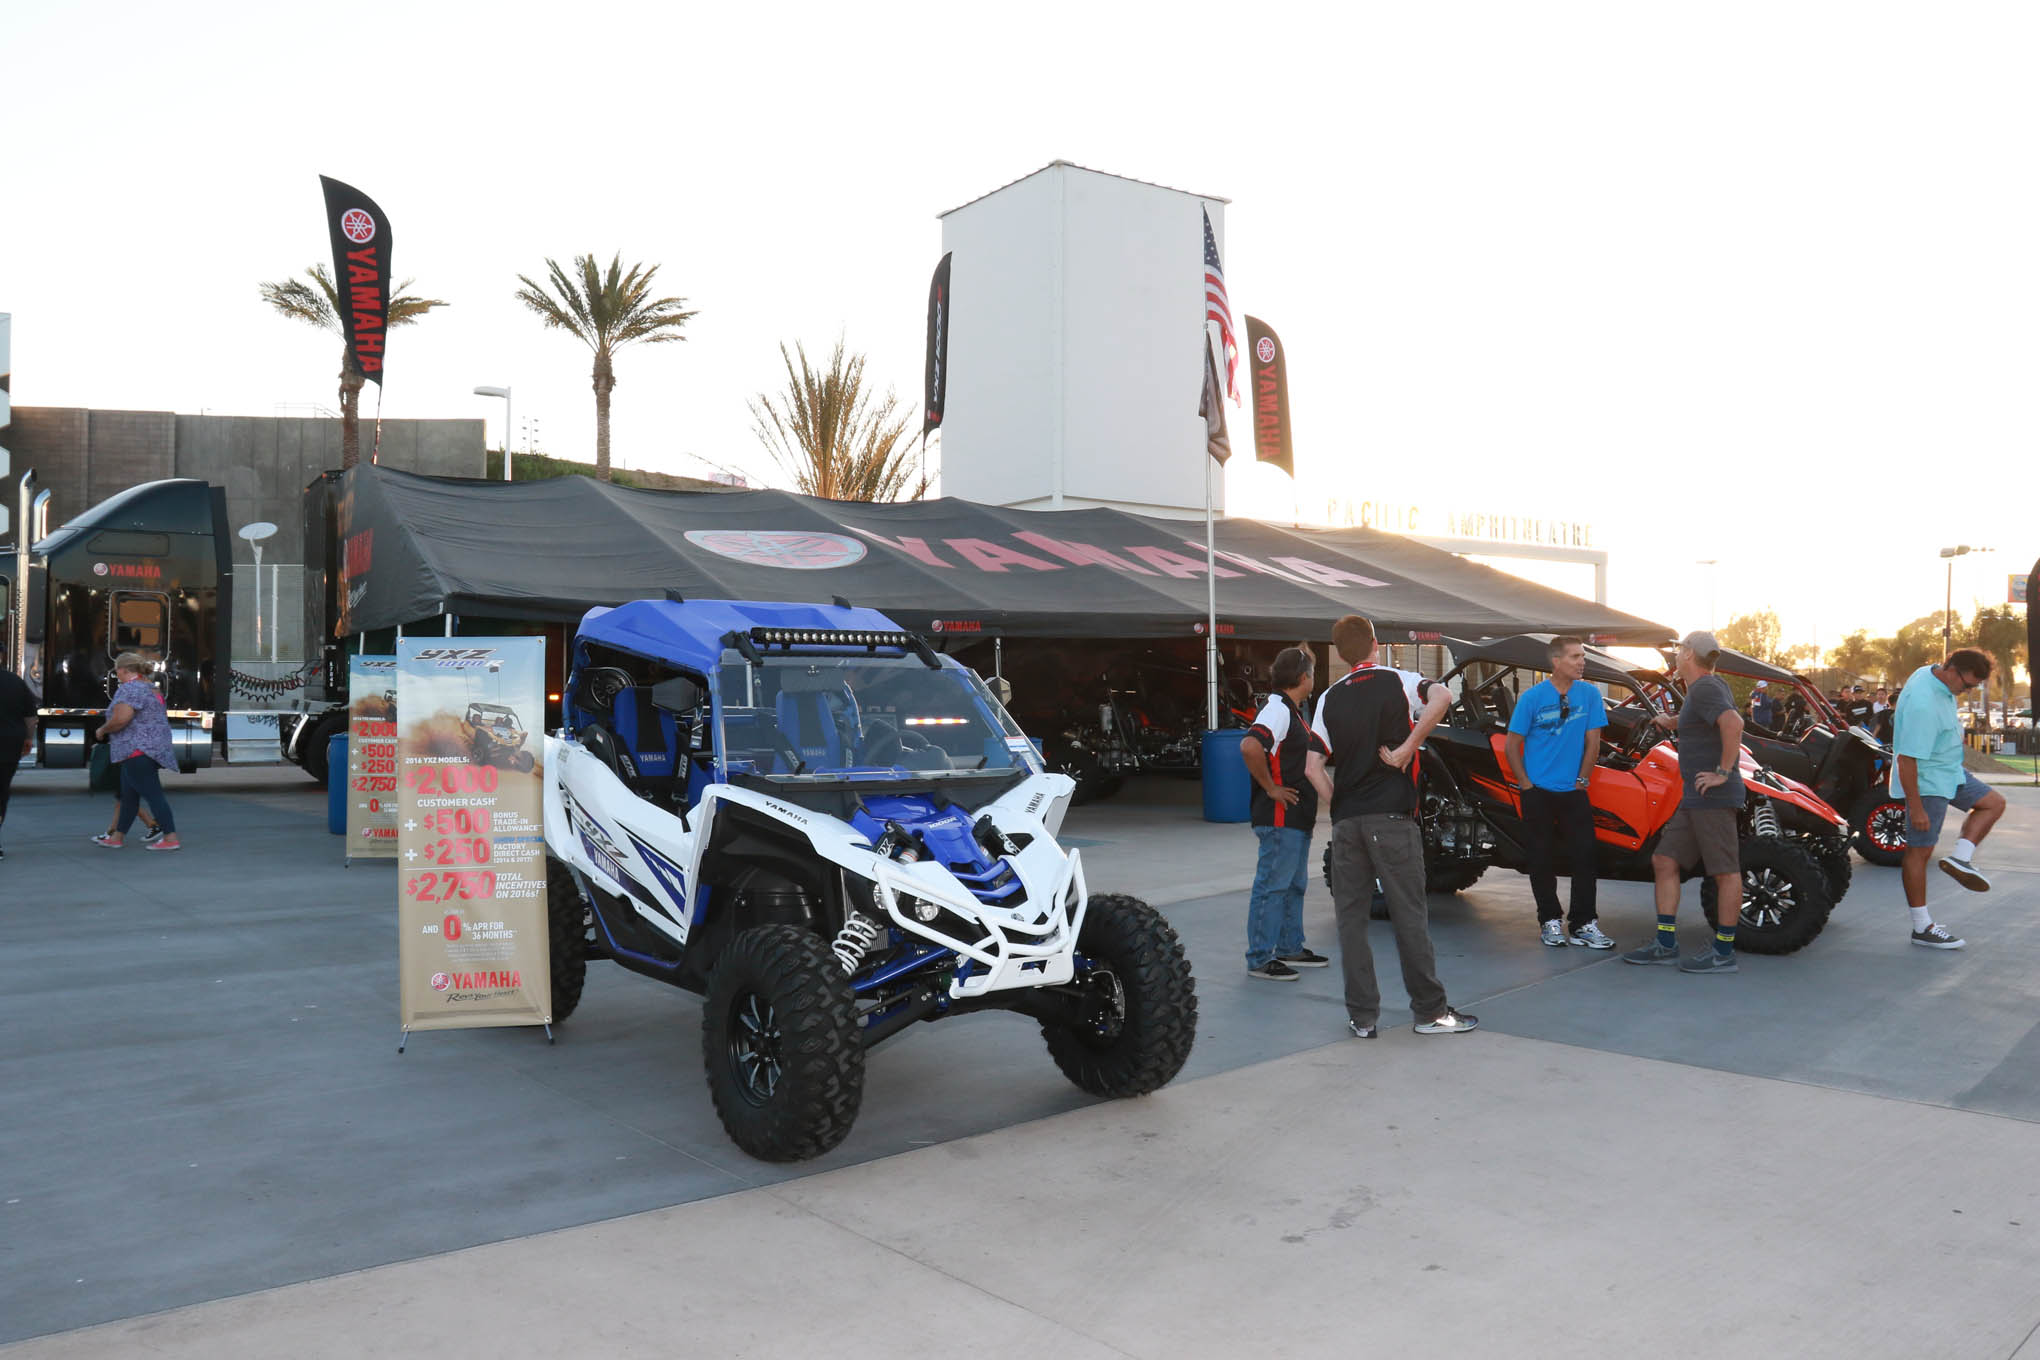 Yamaha, Polaris, Arctic Cat and Can Am all had huge booths showcasing their latest models.